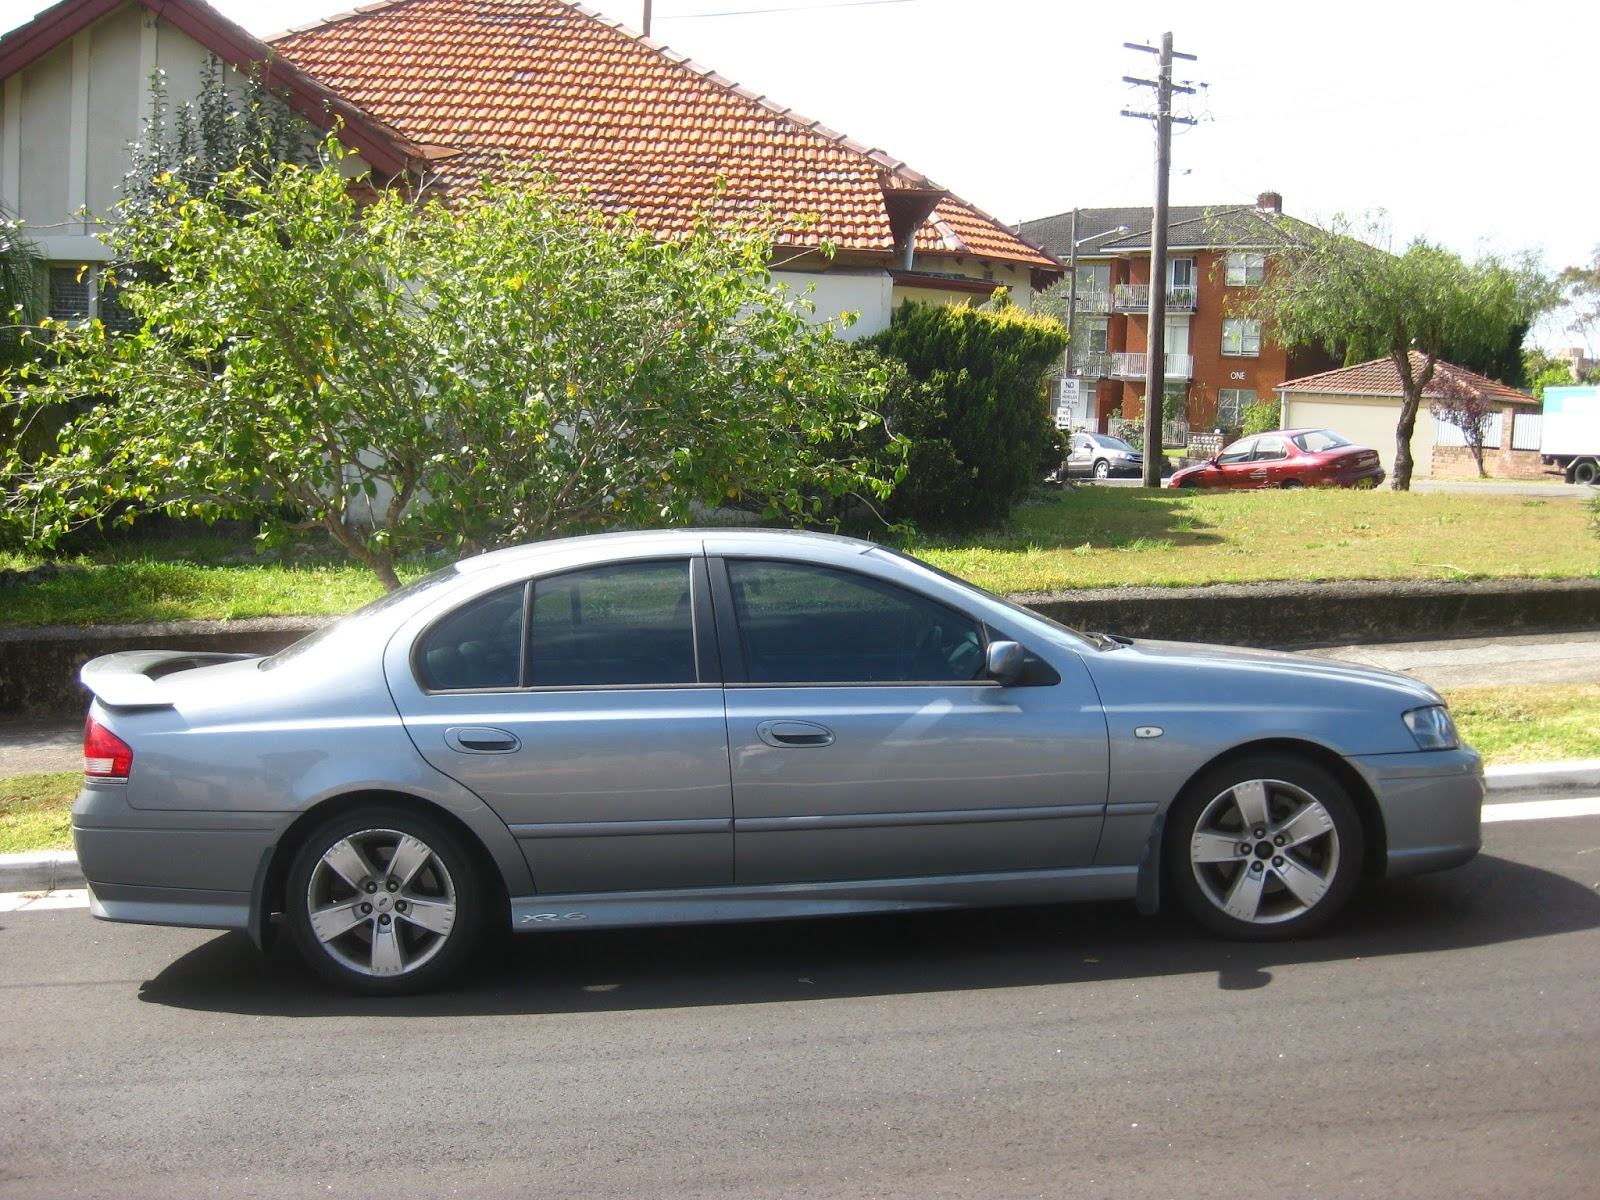 Aussie Old Parked Cars  2005 Ford Ba Falcon Xr6 Turbo